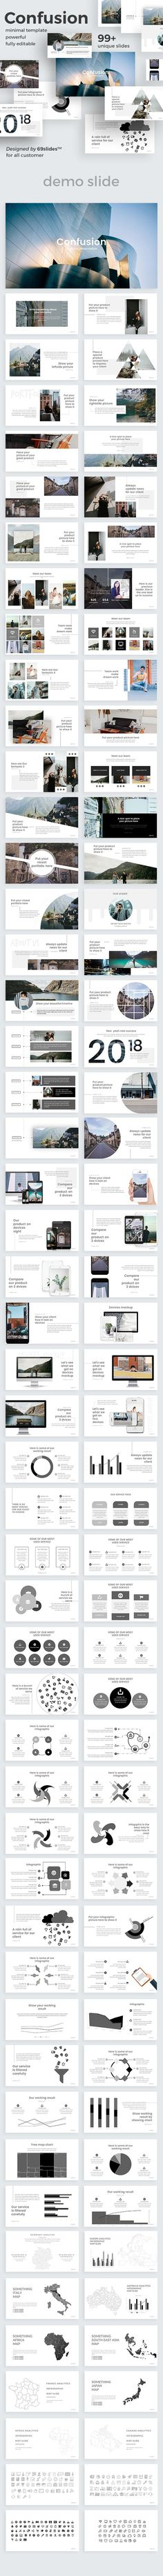 Confusion Creative Google Slide Template - Google Slides Presentation Templates